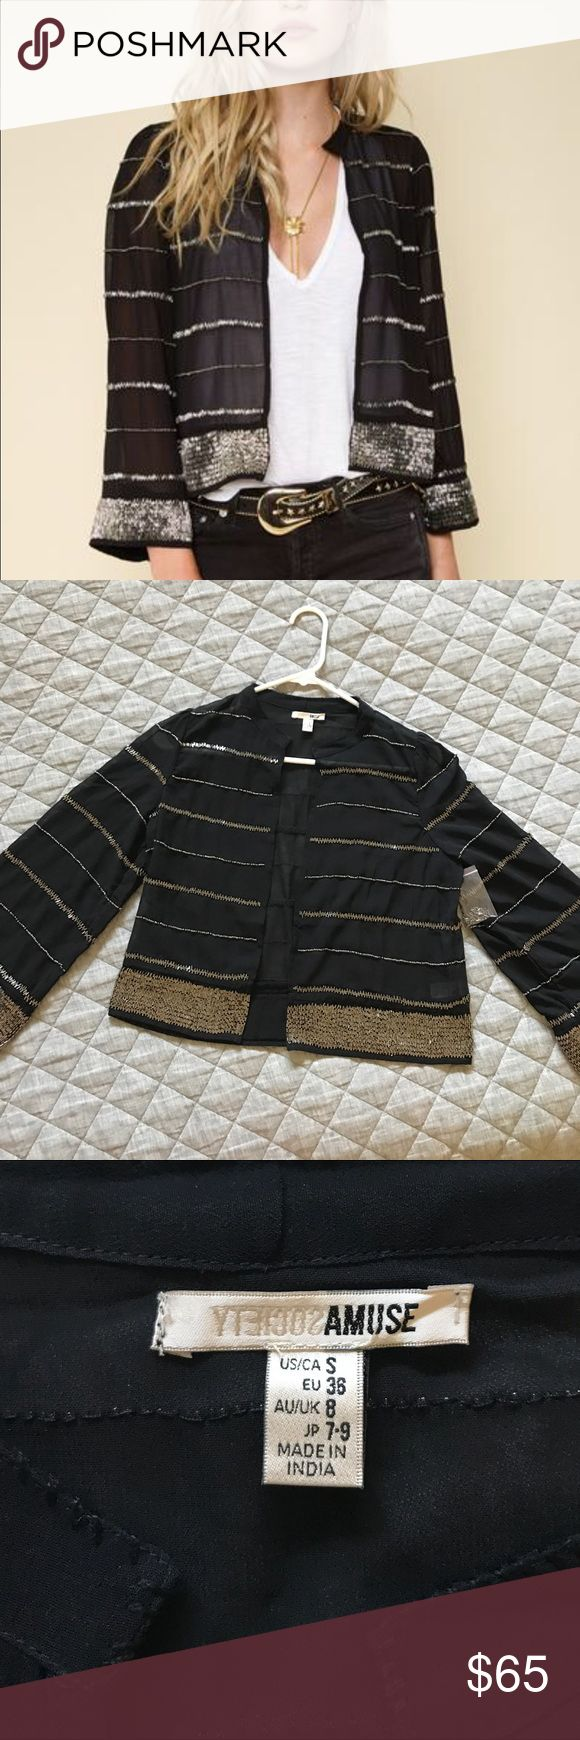 Amuse black amity beaded jacket Super cute beaded jacket by AMUSE society. Never worn and brand new with tags! amuse society Sweaters Shrugs & Ponchos